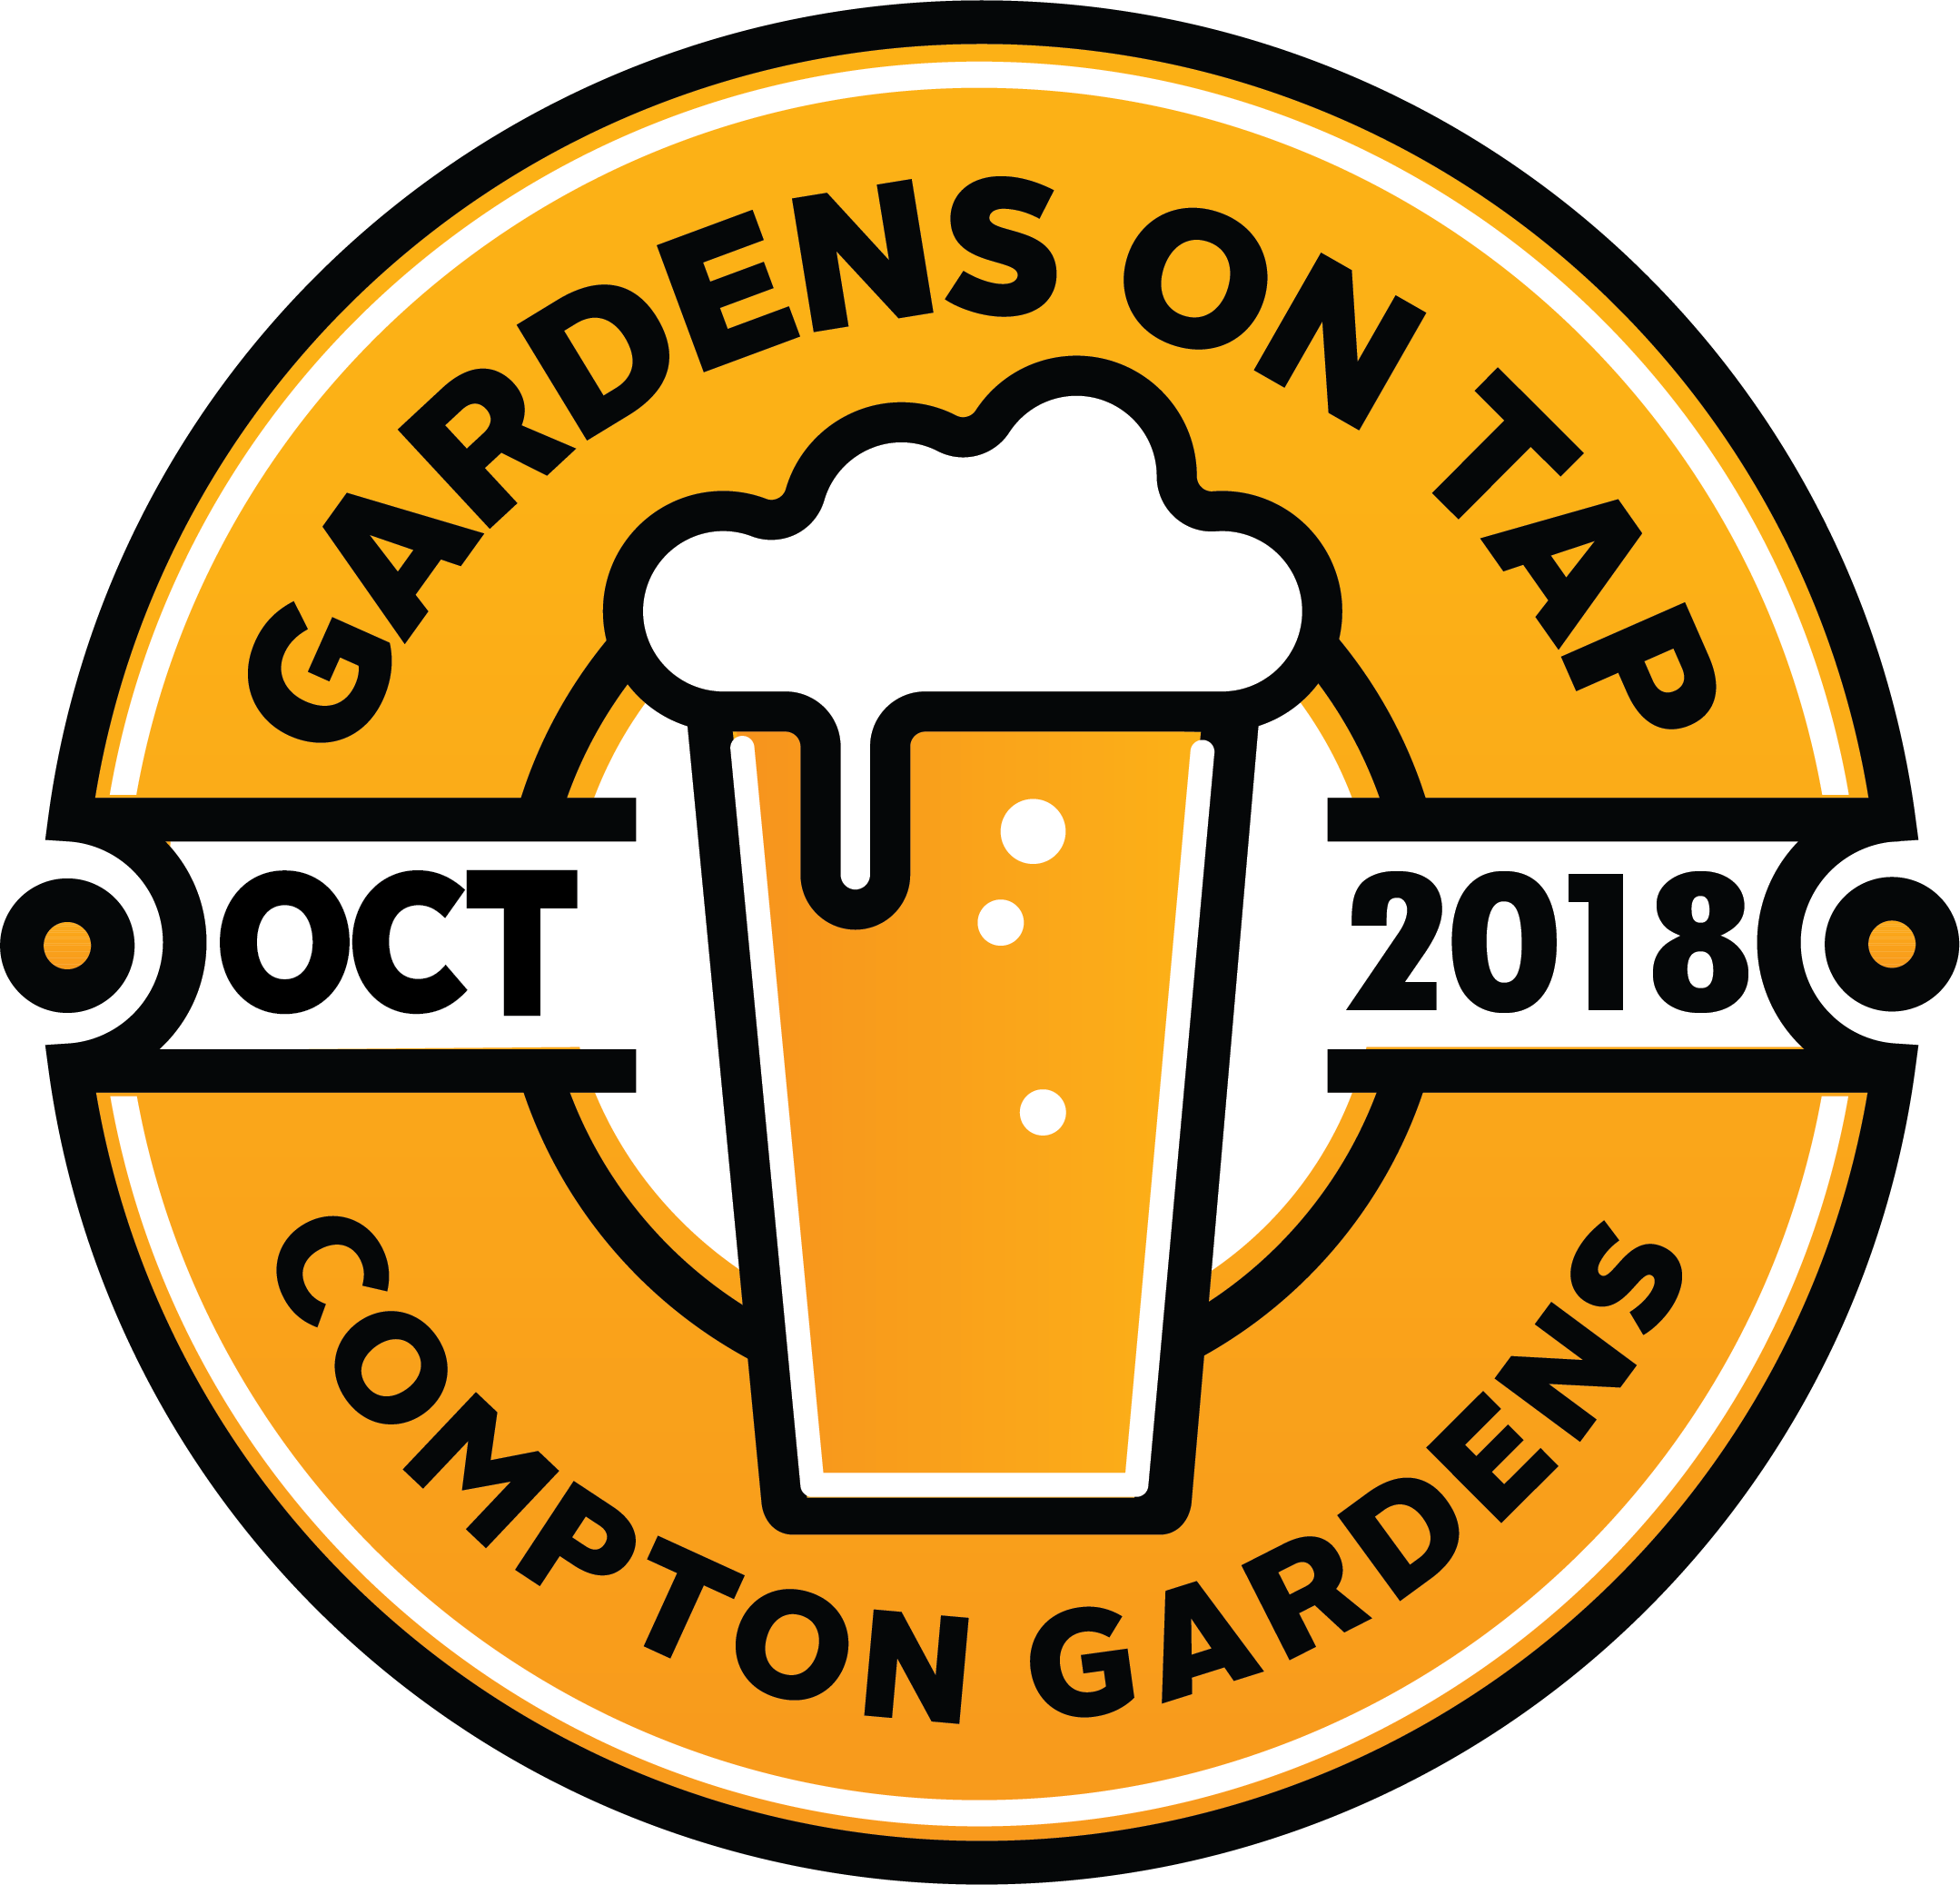 Mr clipart ms foundation. Gardens on tap amount